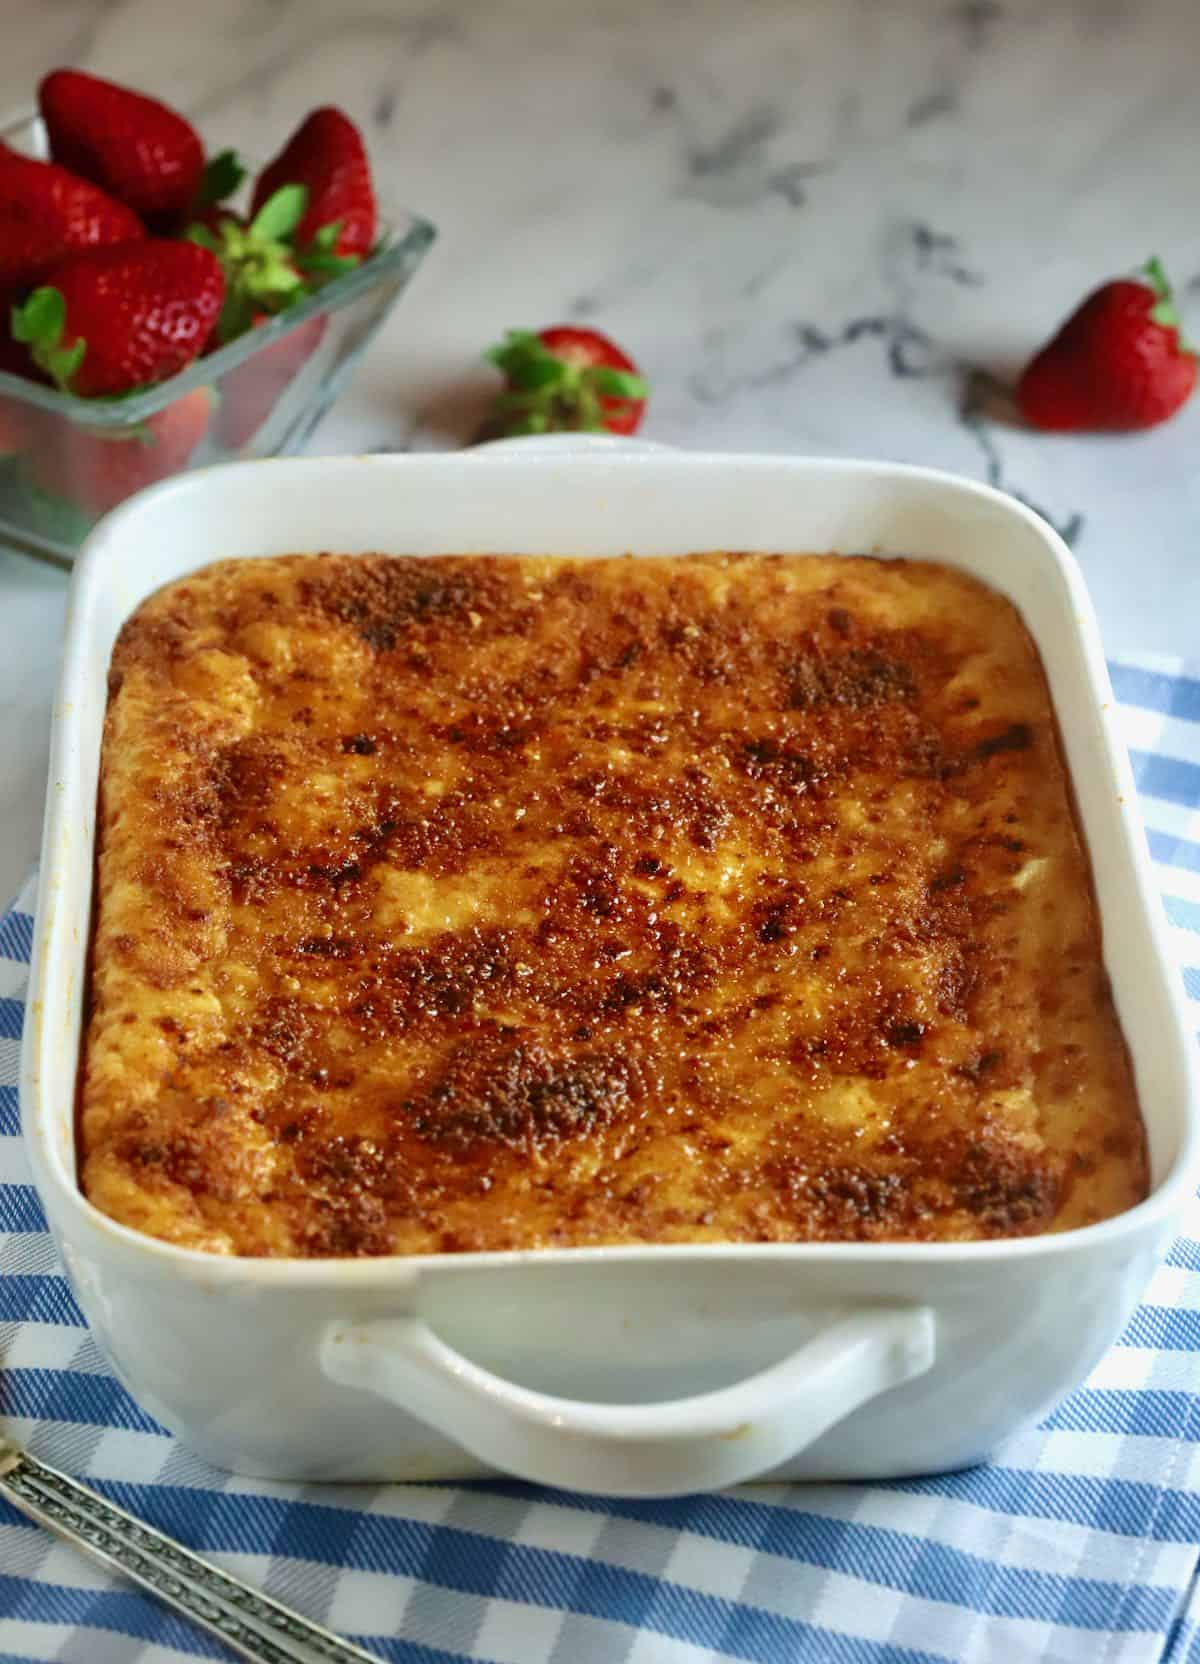 A baked cheese grits casserole on a blue and white kitchen towel.